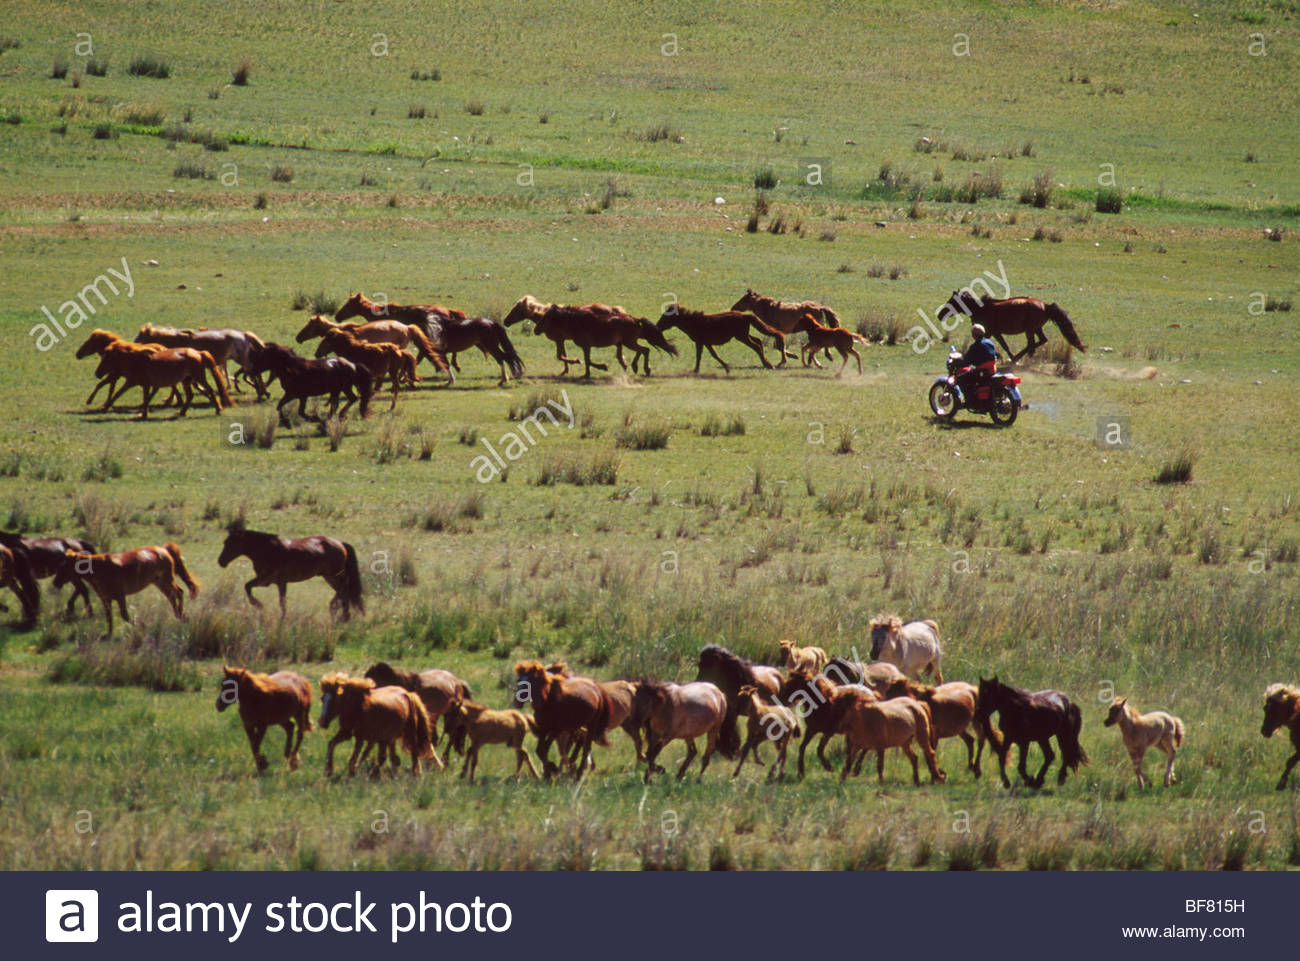 Park rangers chasing domestic horses from park on motorcycle, Hustain Nuruu National Park, Mongolia - Stock Image